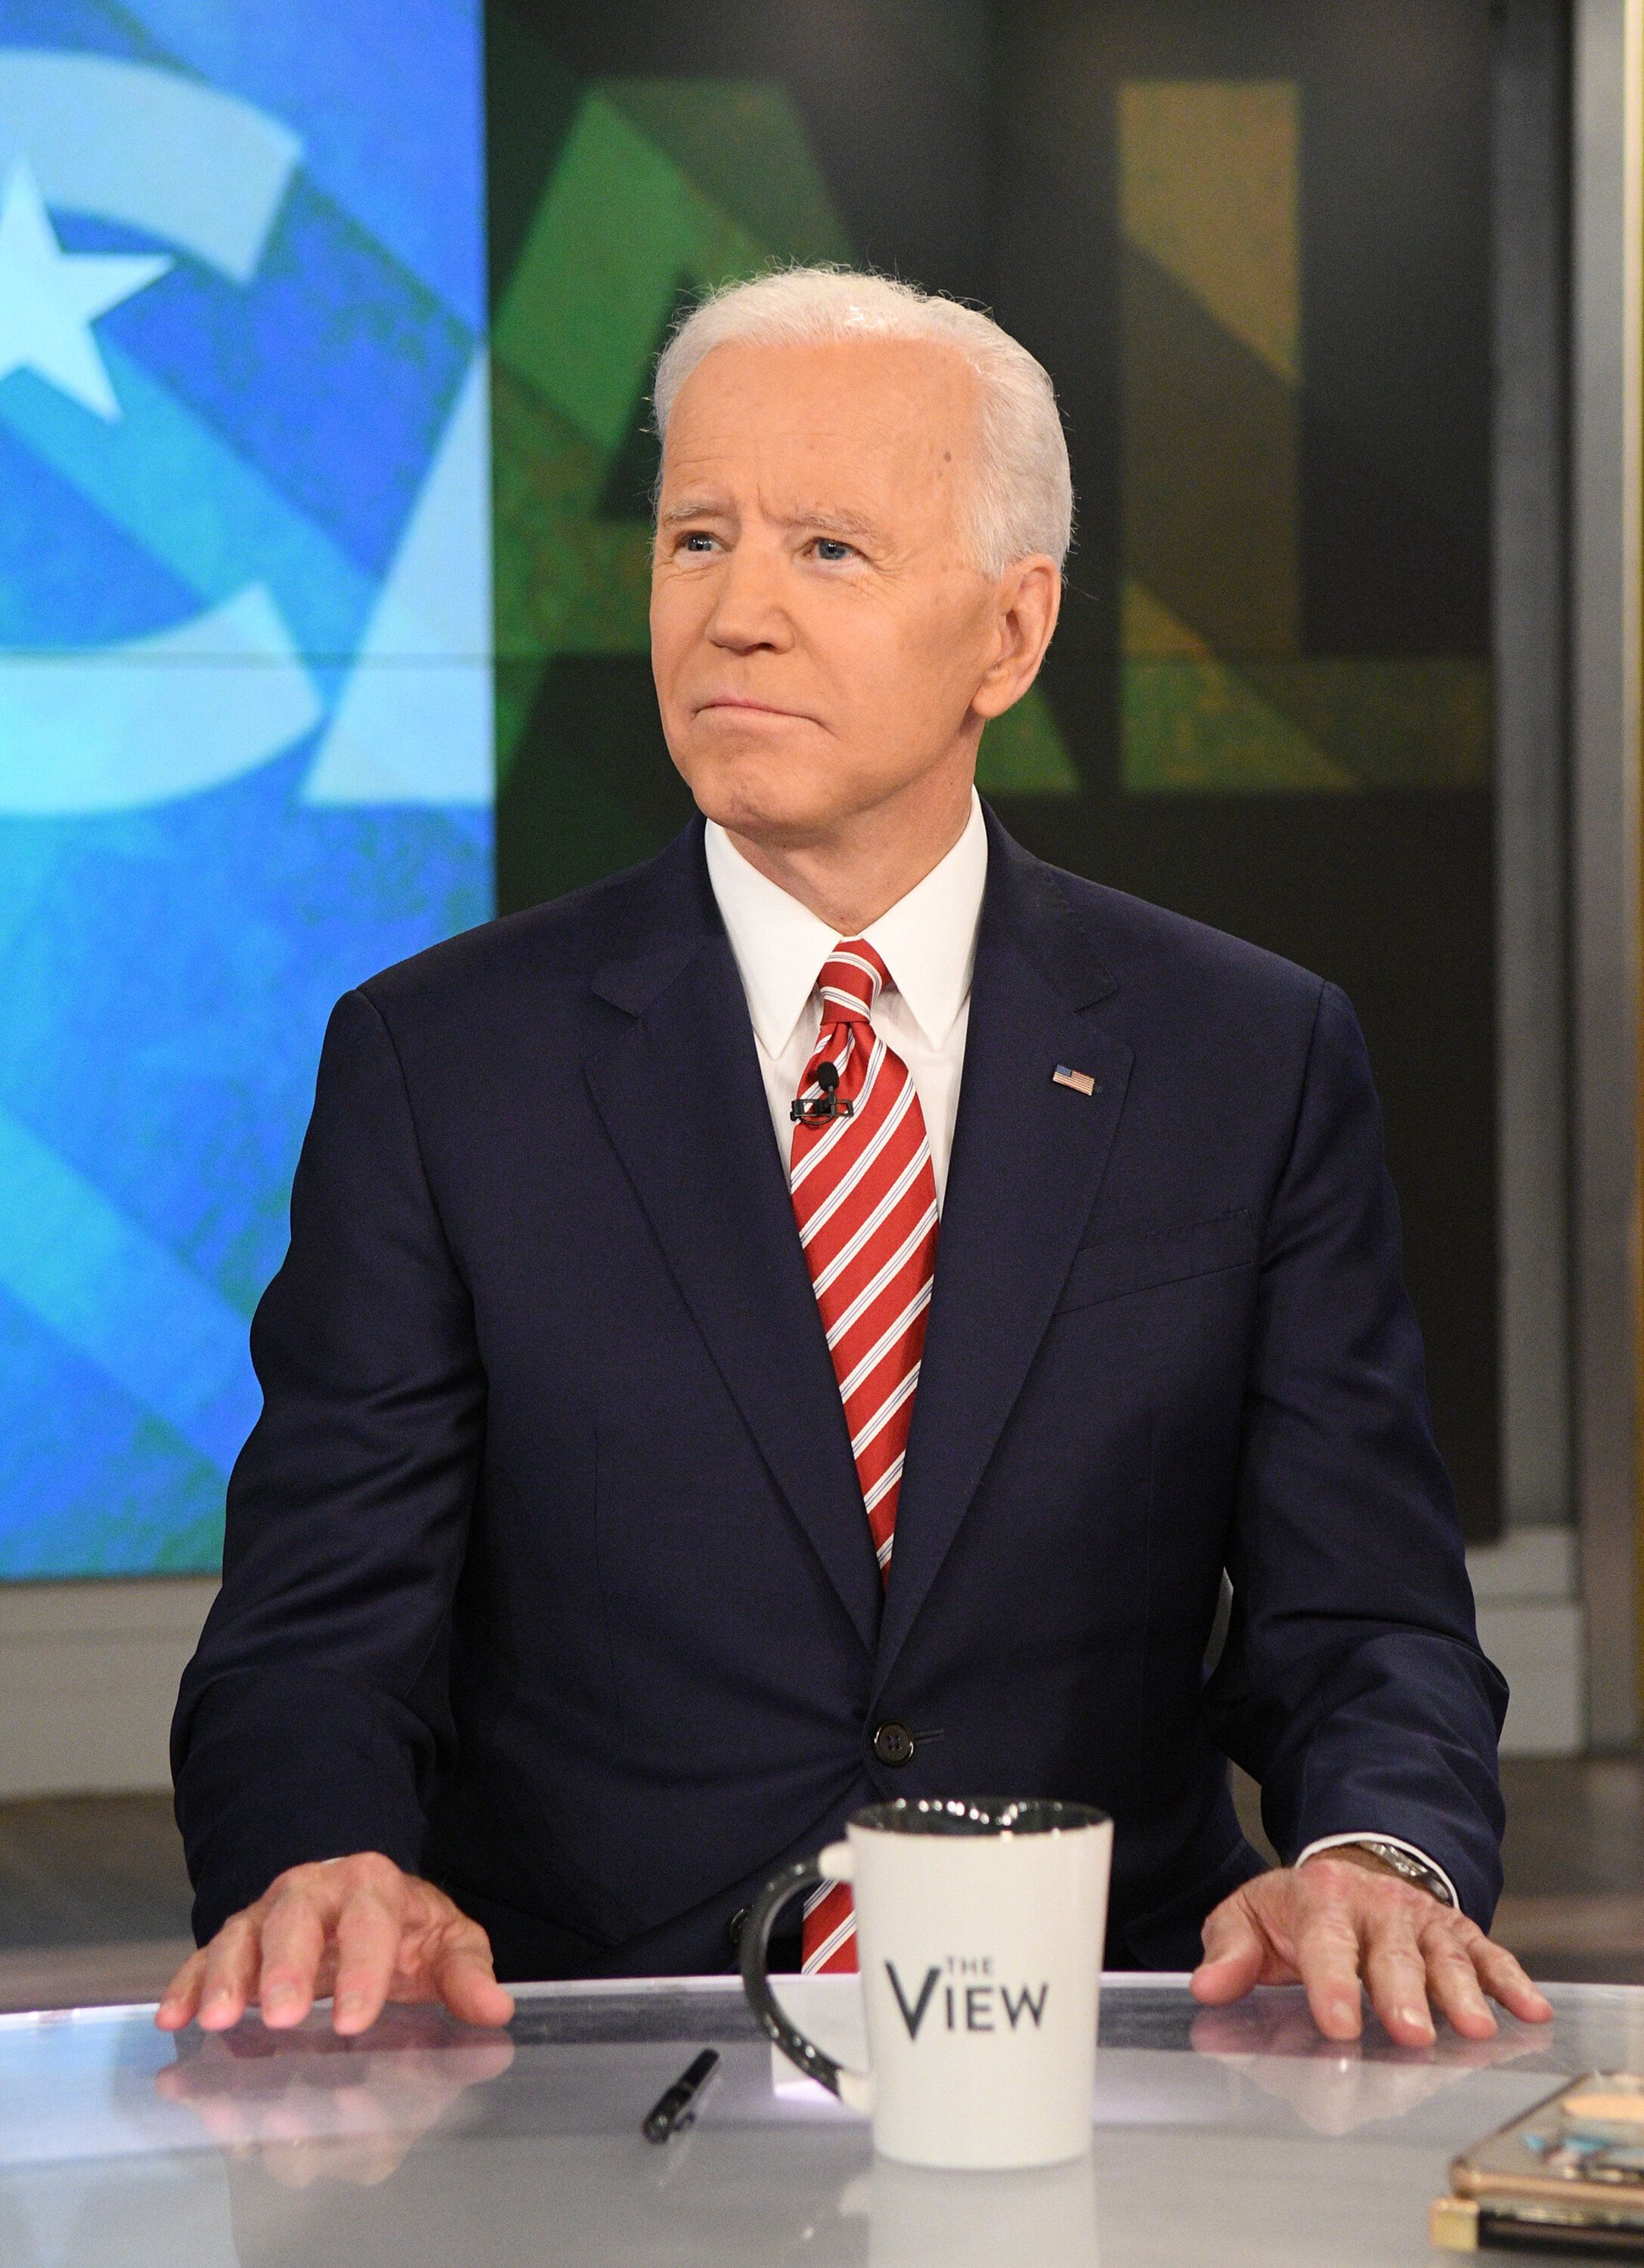 Former Vice President Joe Biden appears on